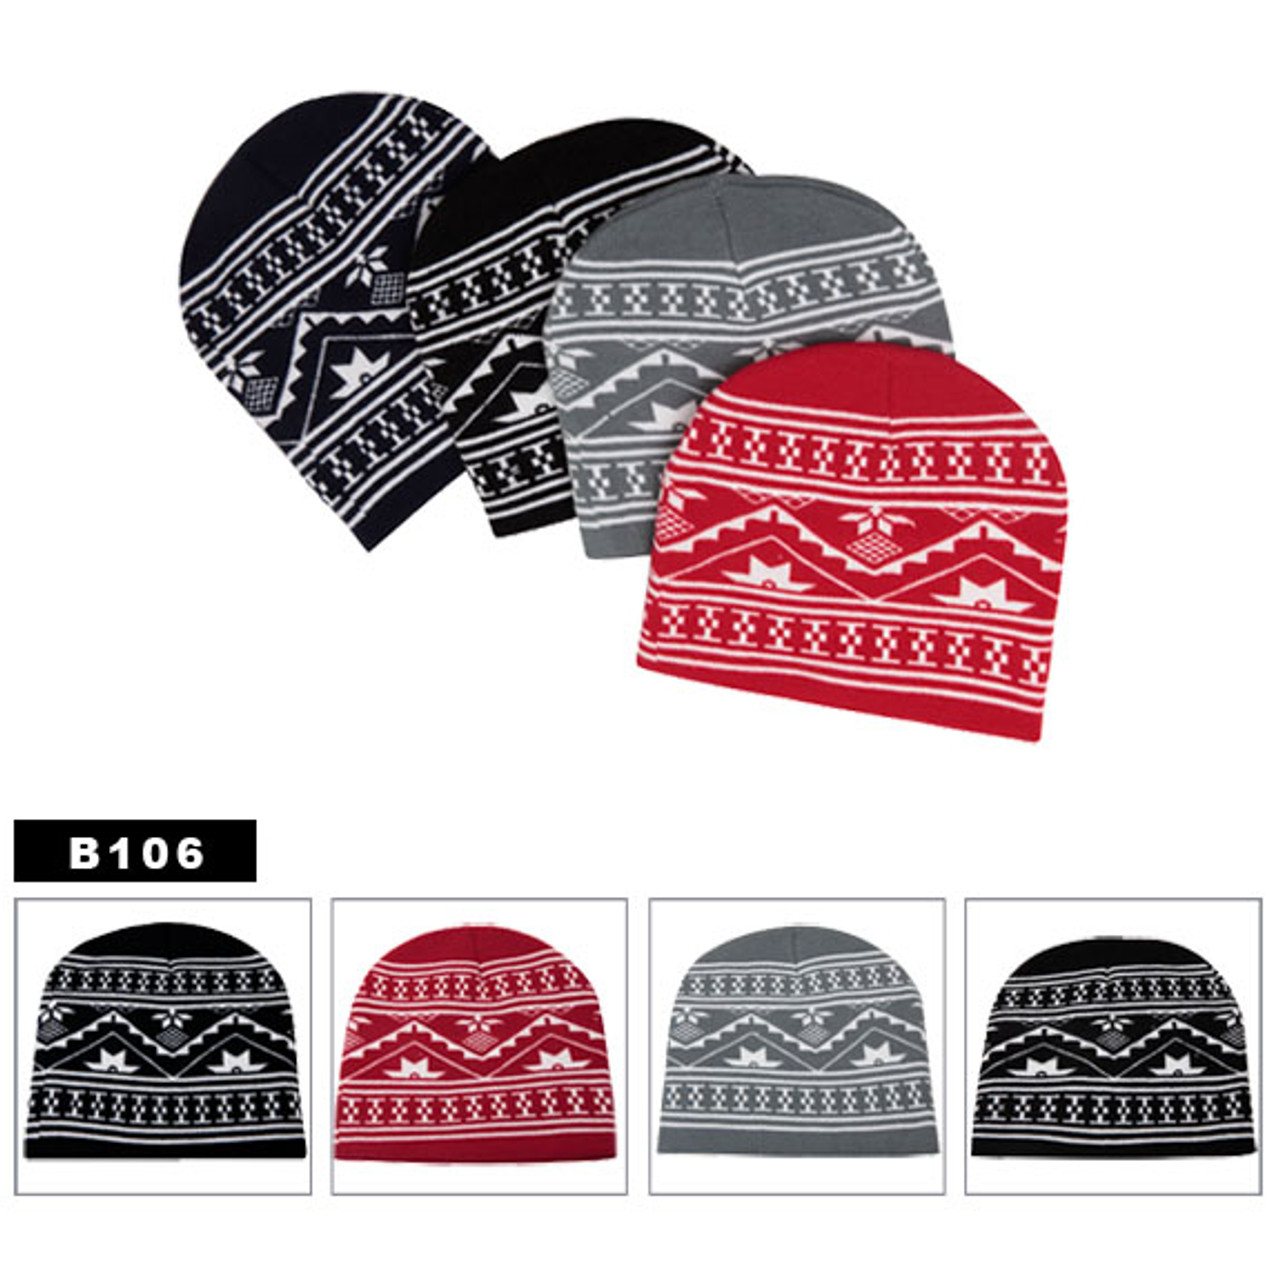 Wholesale Beanies Assorted Himalayan B106 (12 pcs.)